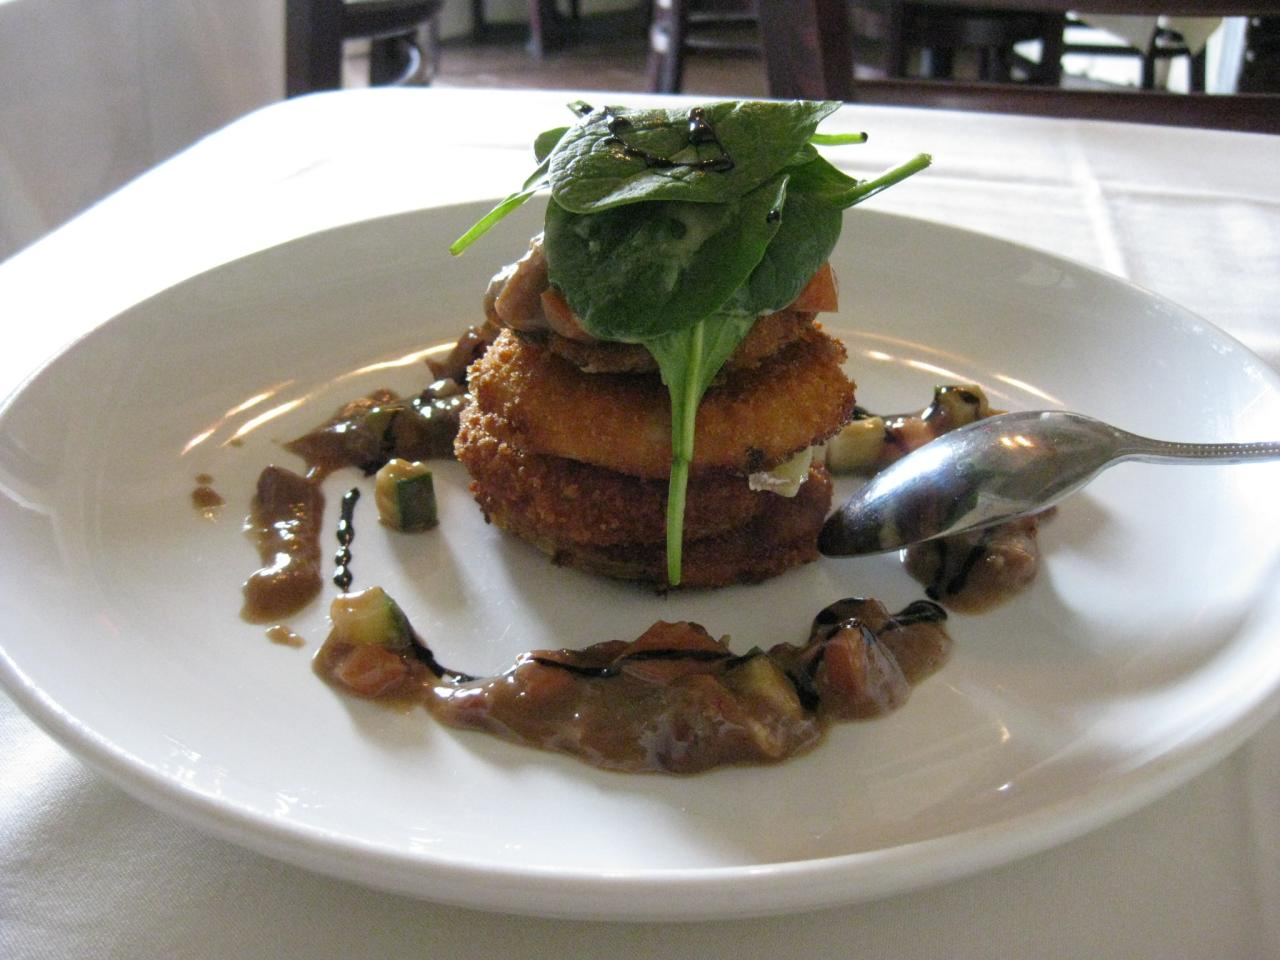 Park Cafe (Duluth) - fried green tomatoes